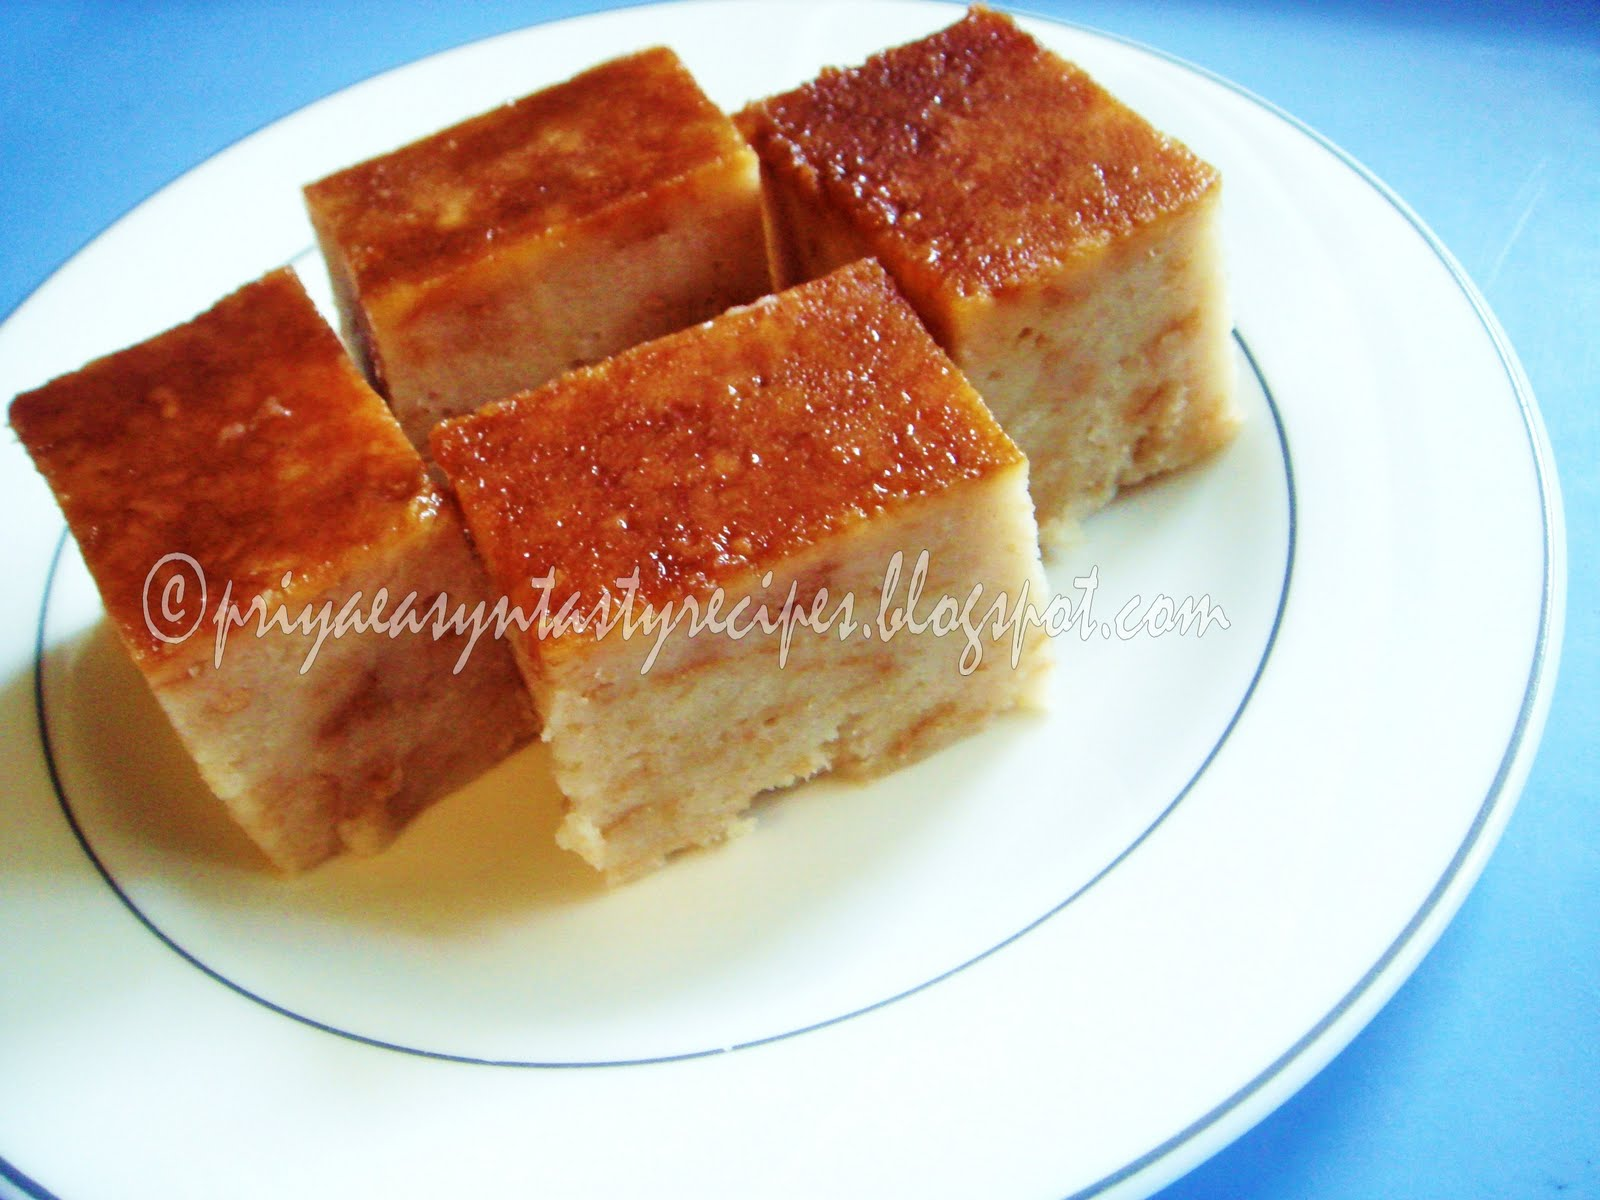 Priya's Versatile Recipes: Caramel Bread Pudding